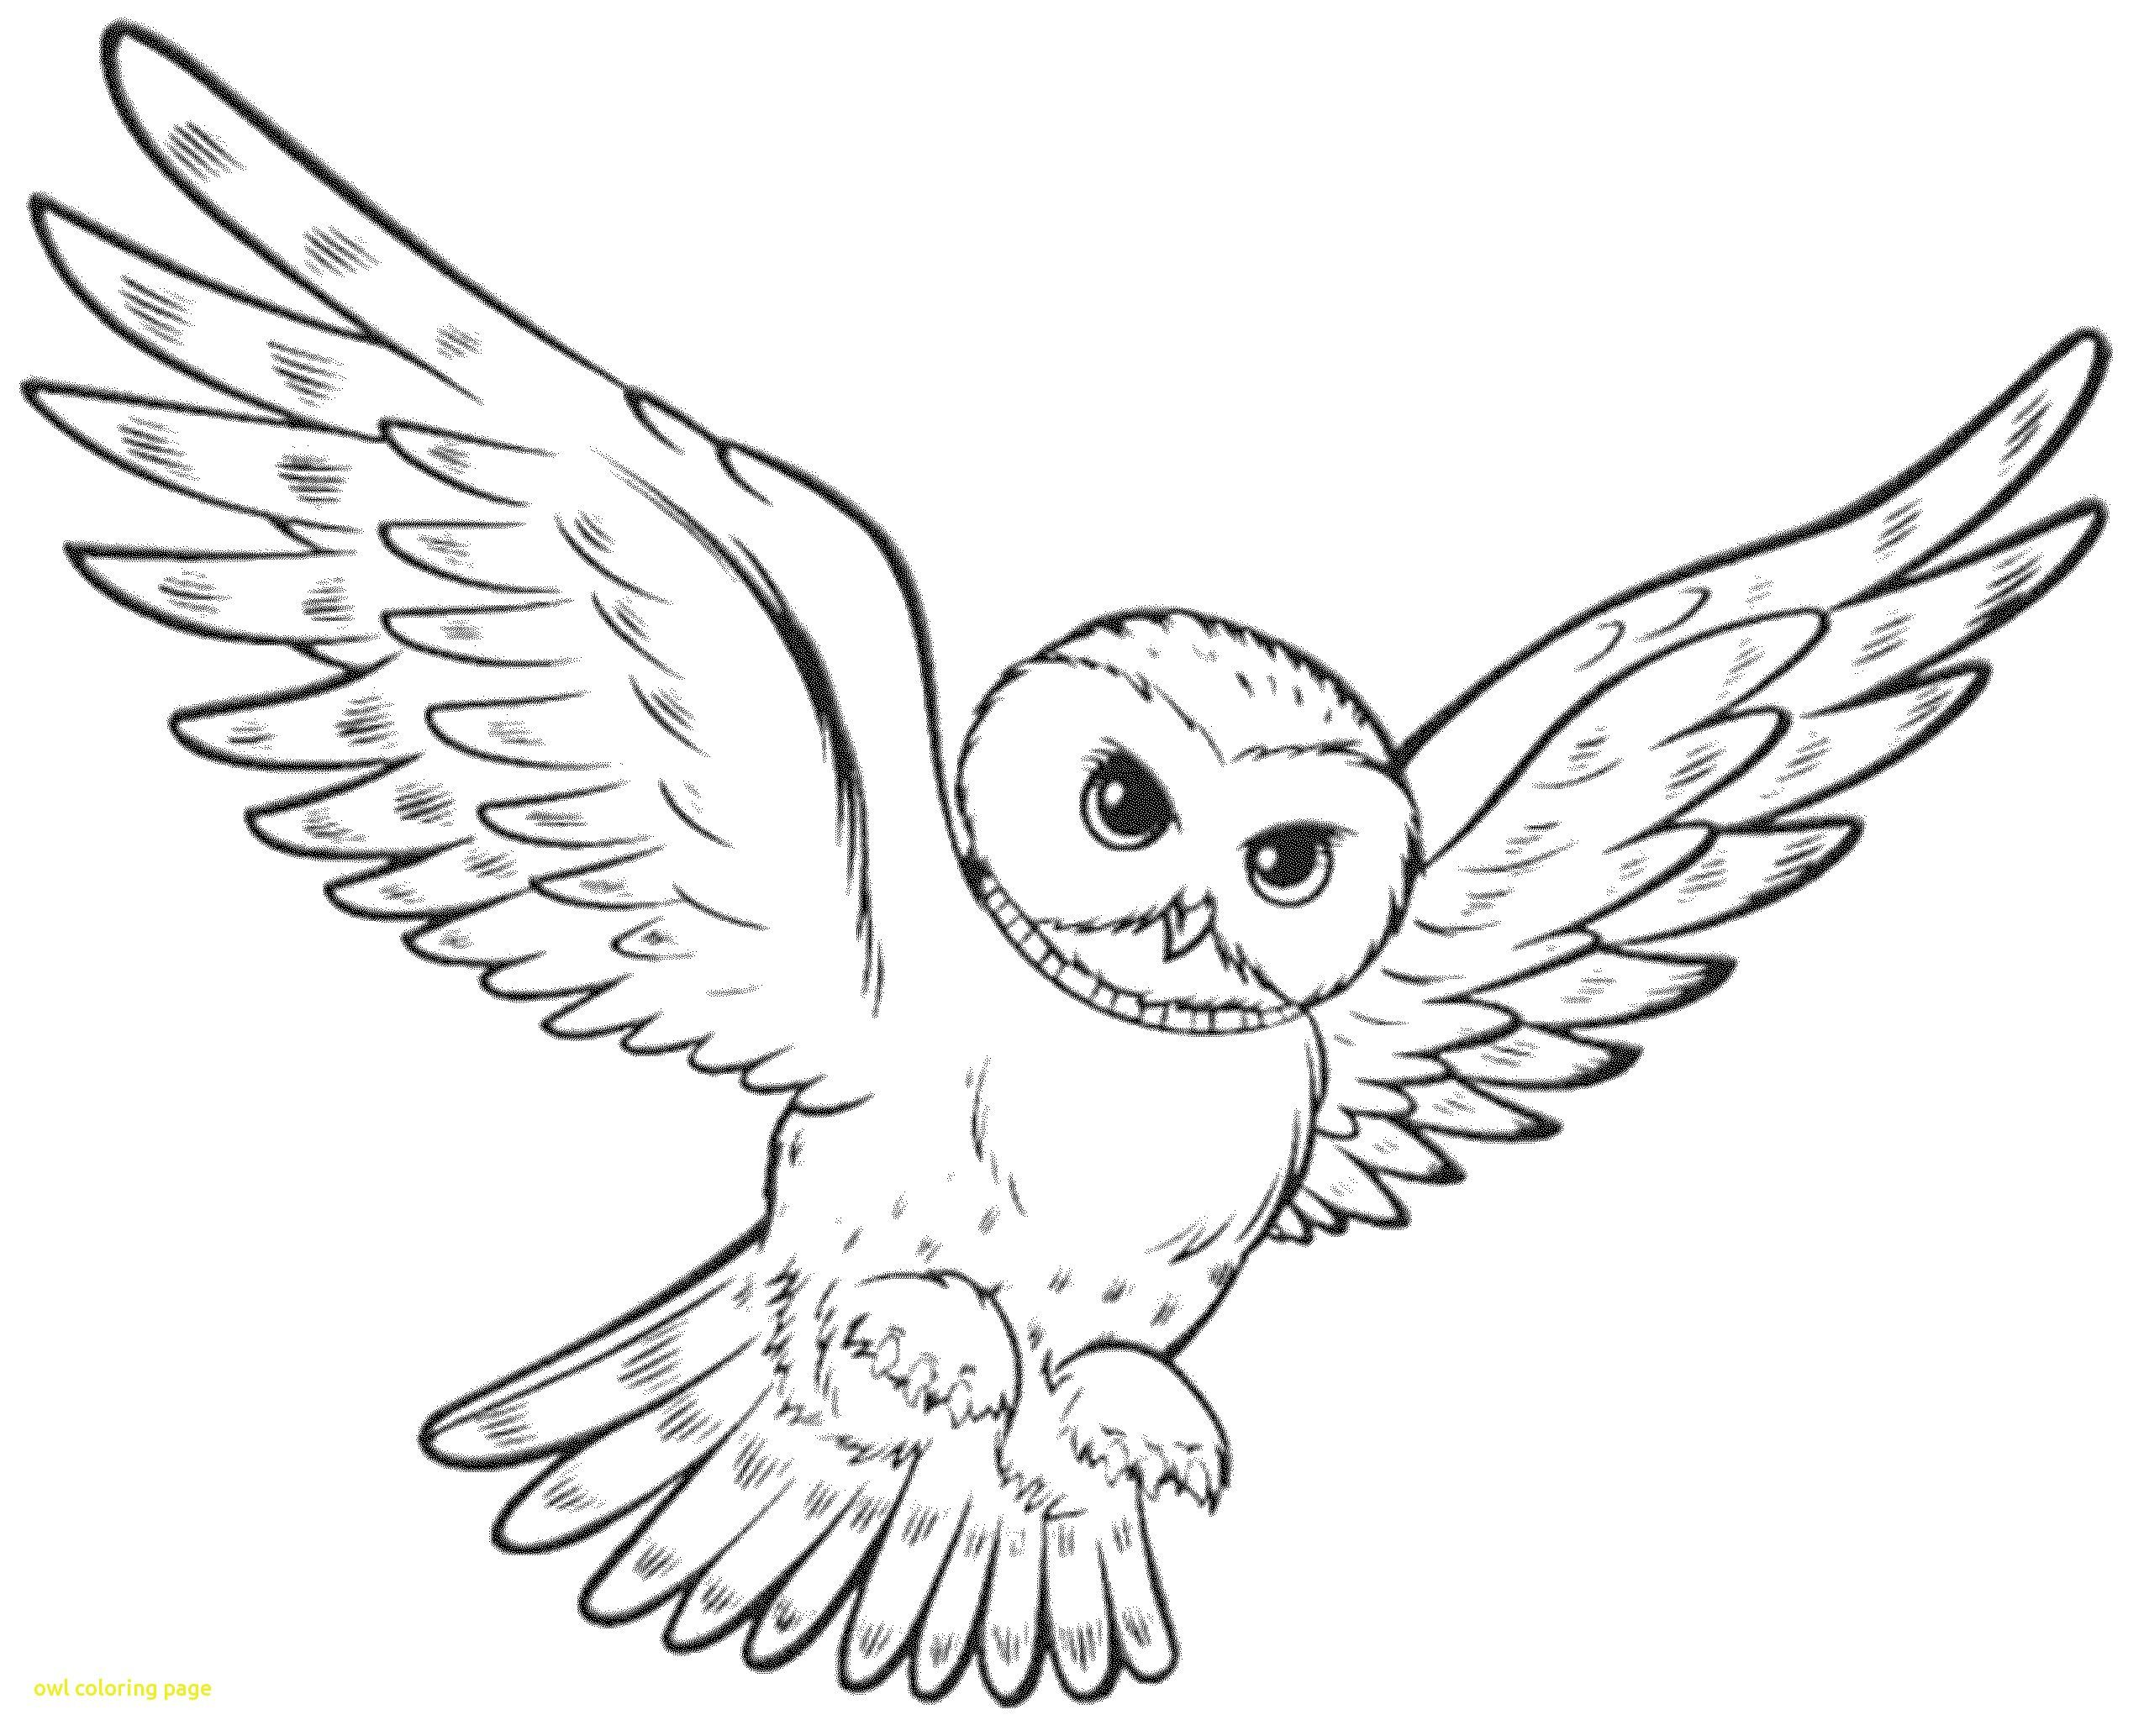 Free Owl Coloring Pages For Adults Owl Coloring Pages Animal Coloring Pages Harry Potter Coloring Pages